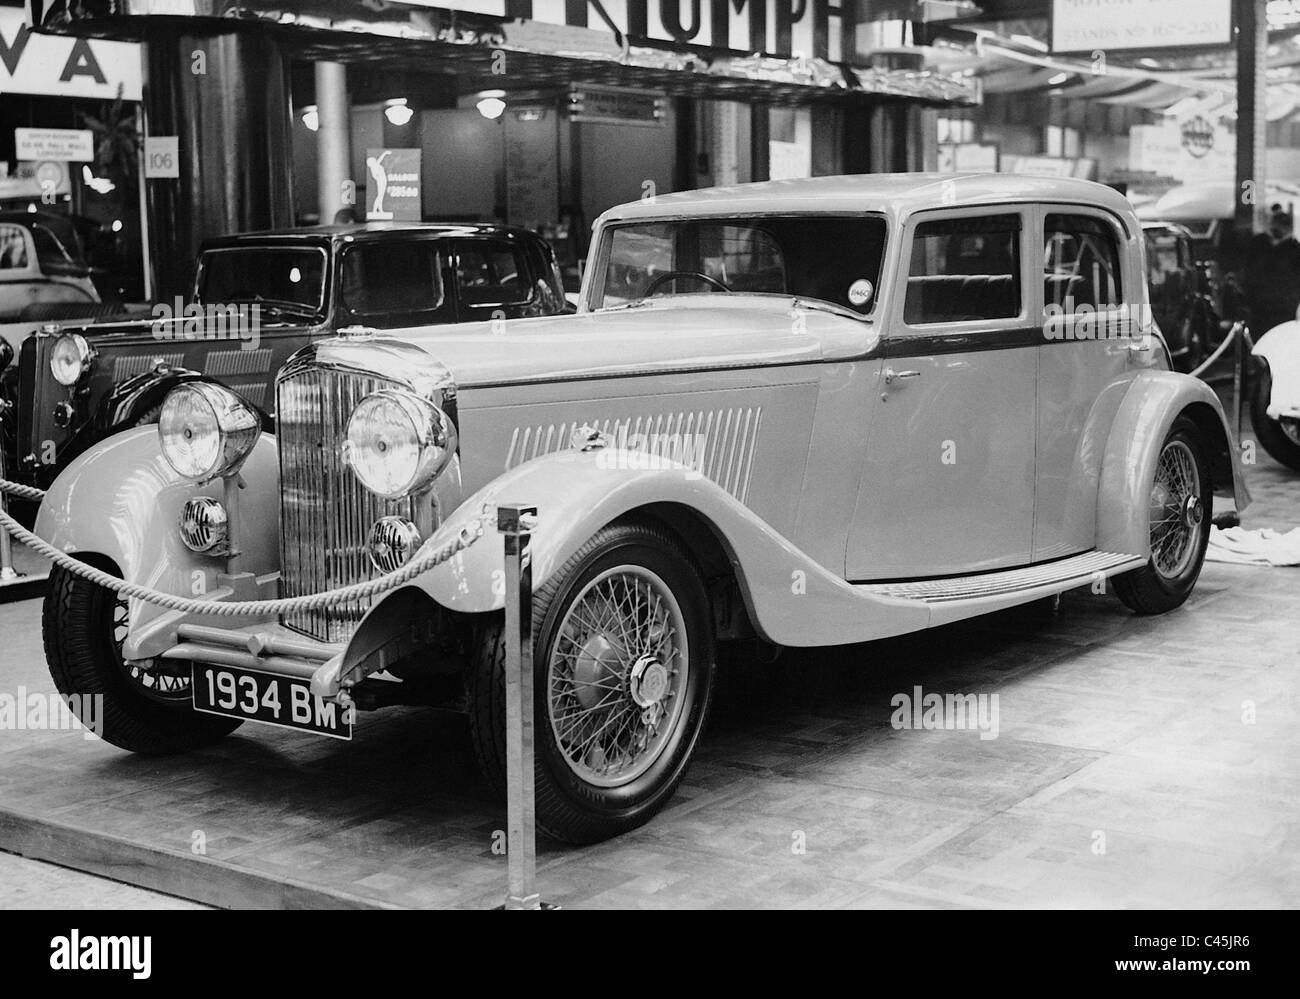 1938 Rolls Royce Black and White Stock Photos & Images - Alamy